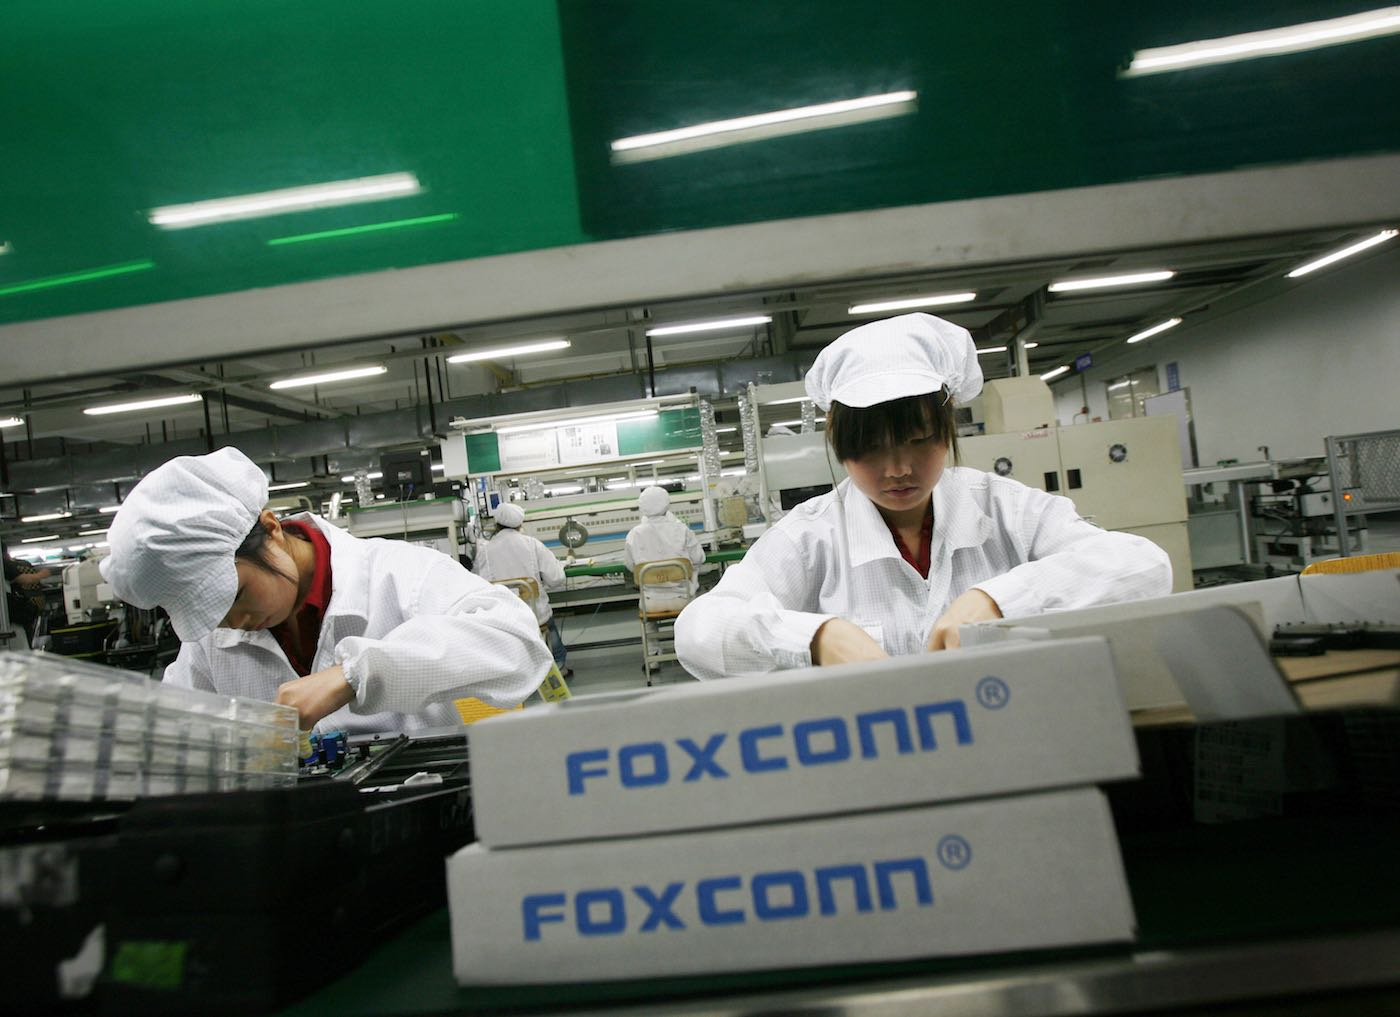 Apple Foxconn 2